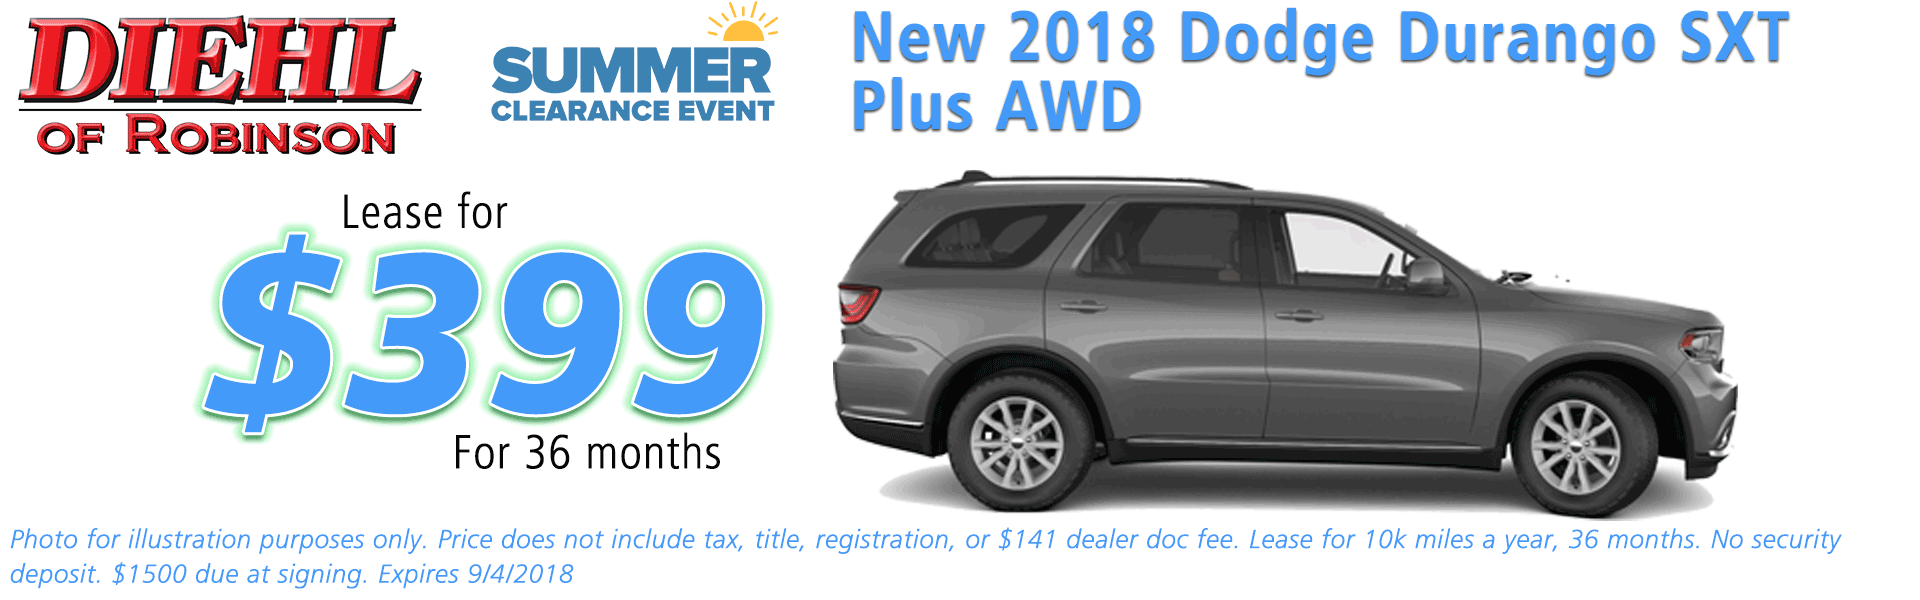 Diehl of Robinson, Robinson Twp, PA Chrysler Dodge Jeep Ram New and Used Sales, service, parts accessories NEW 2018 DODGE DURANGO SXT PLUS AWD